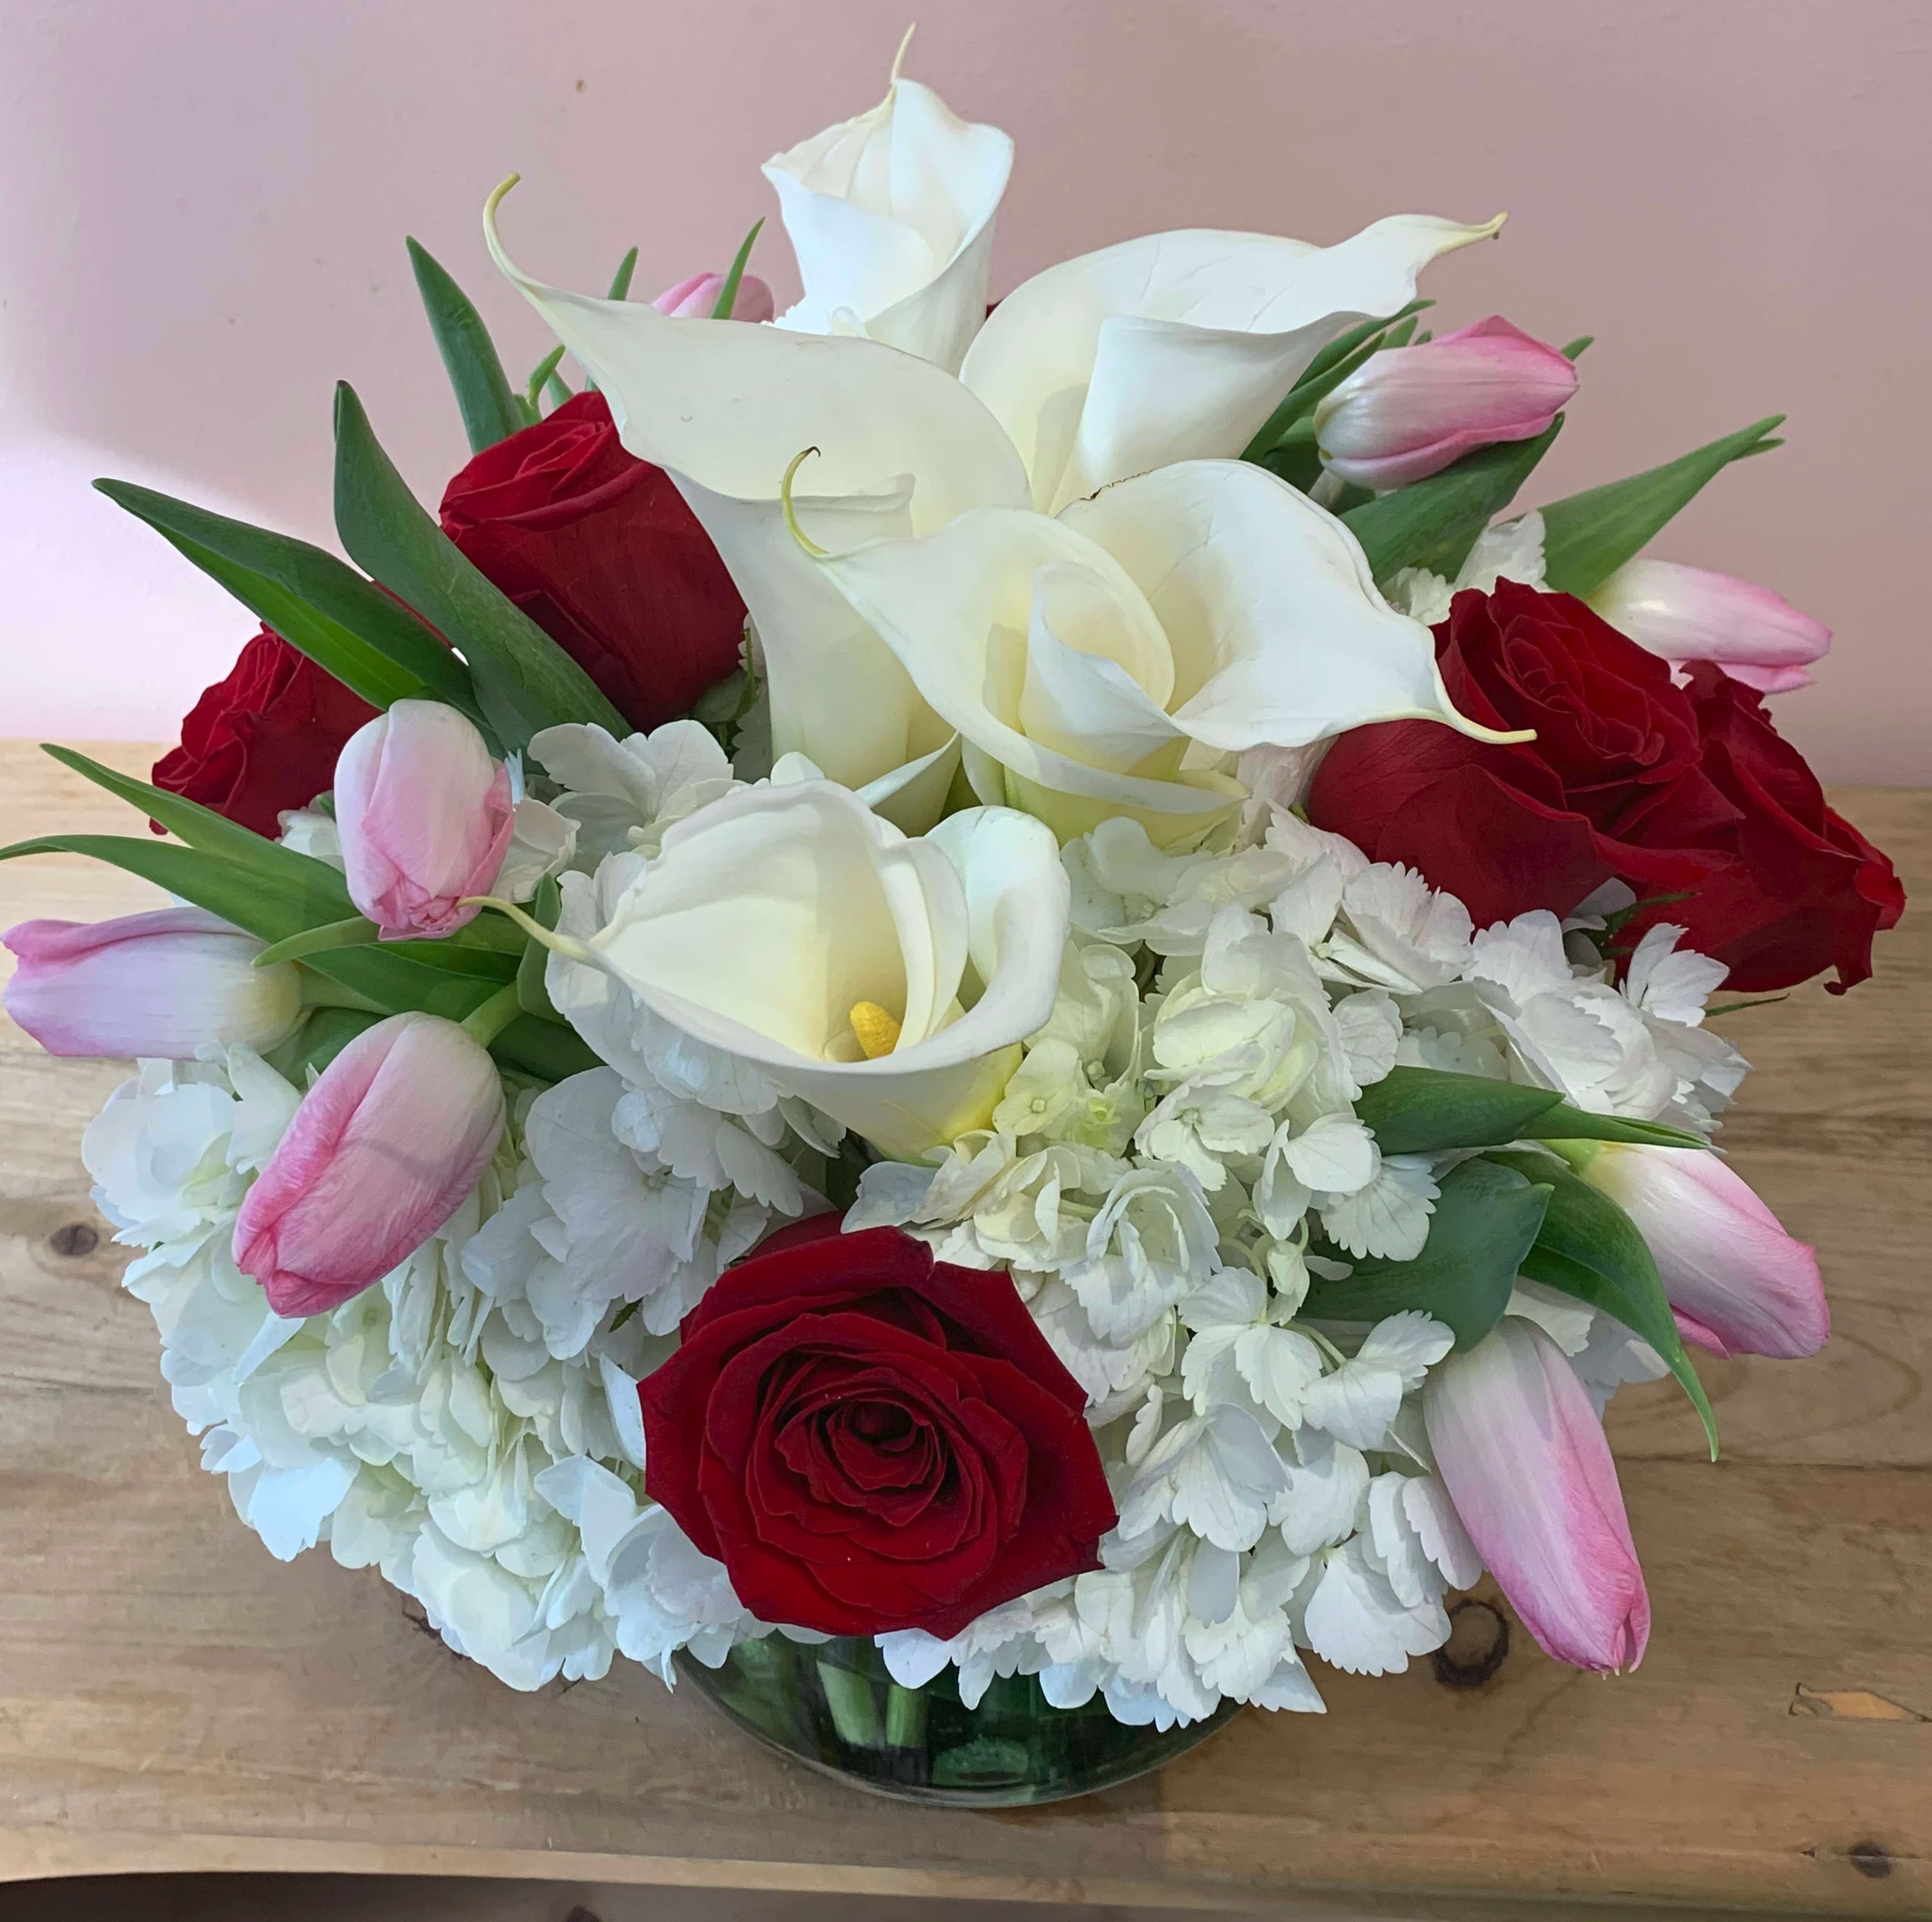 Red Roses Pink Tulips And White Calla Lilies Hydrangea W500 By